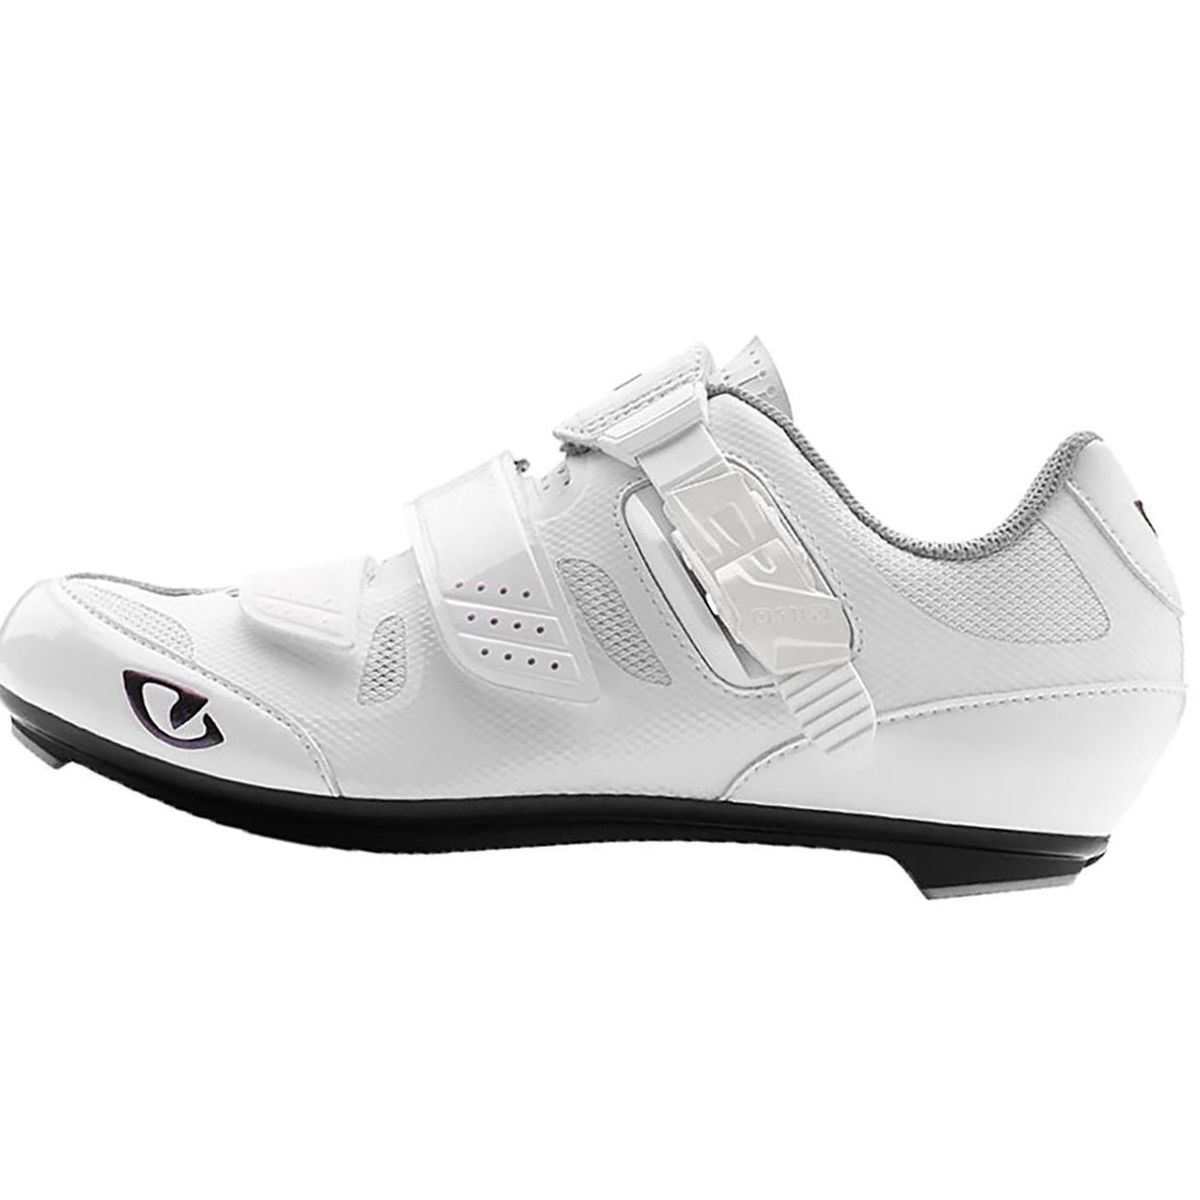 Giro Solara II Cycling Shoe - Women's